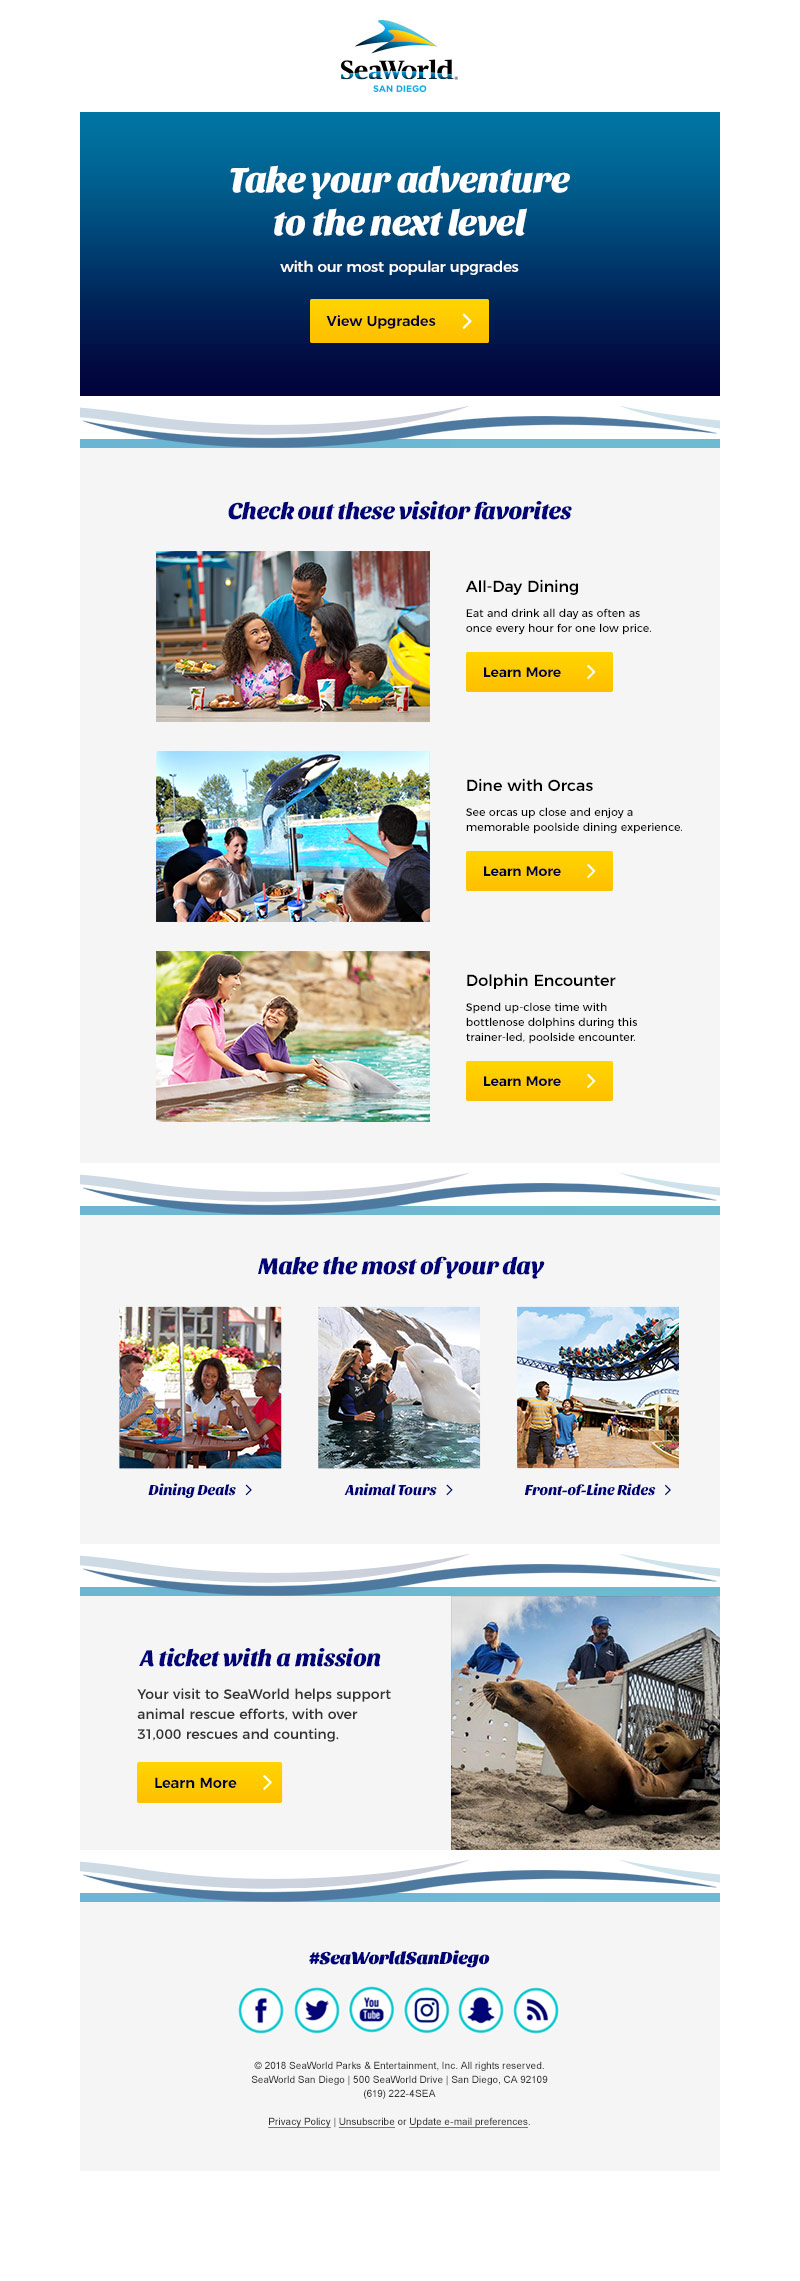 Post purchase upgrade email (SeaWorld San Diego)